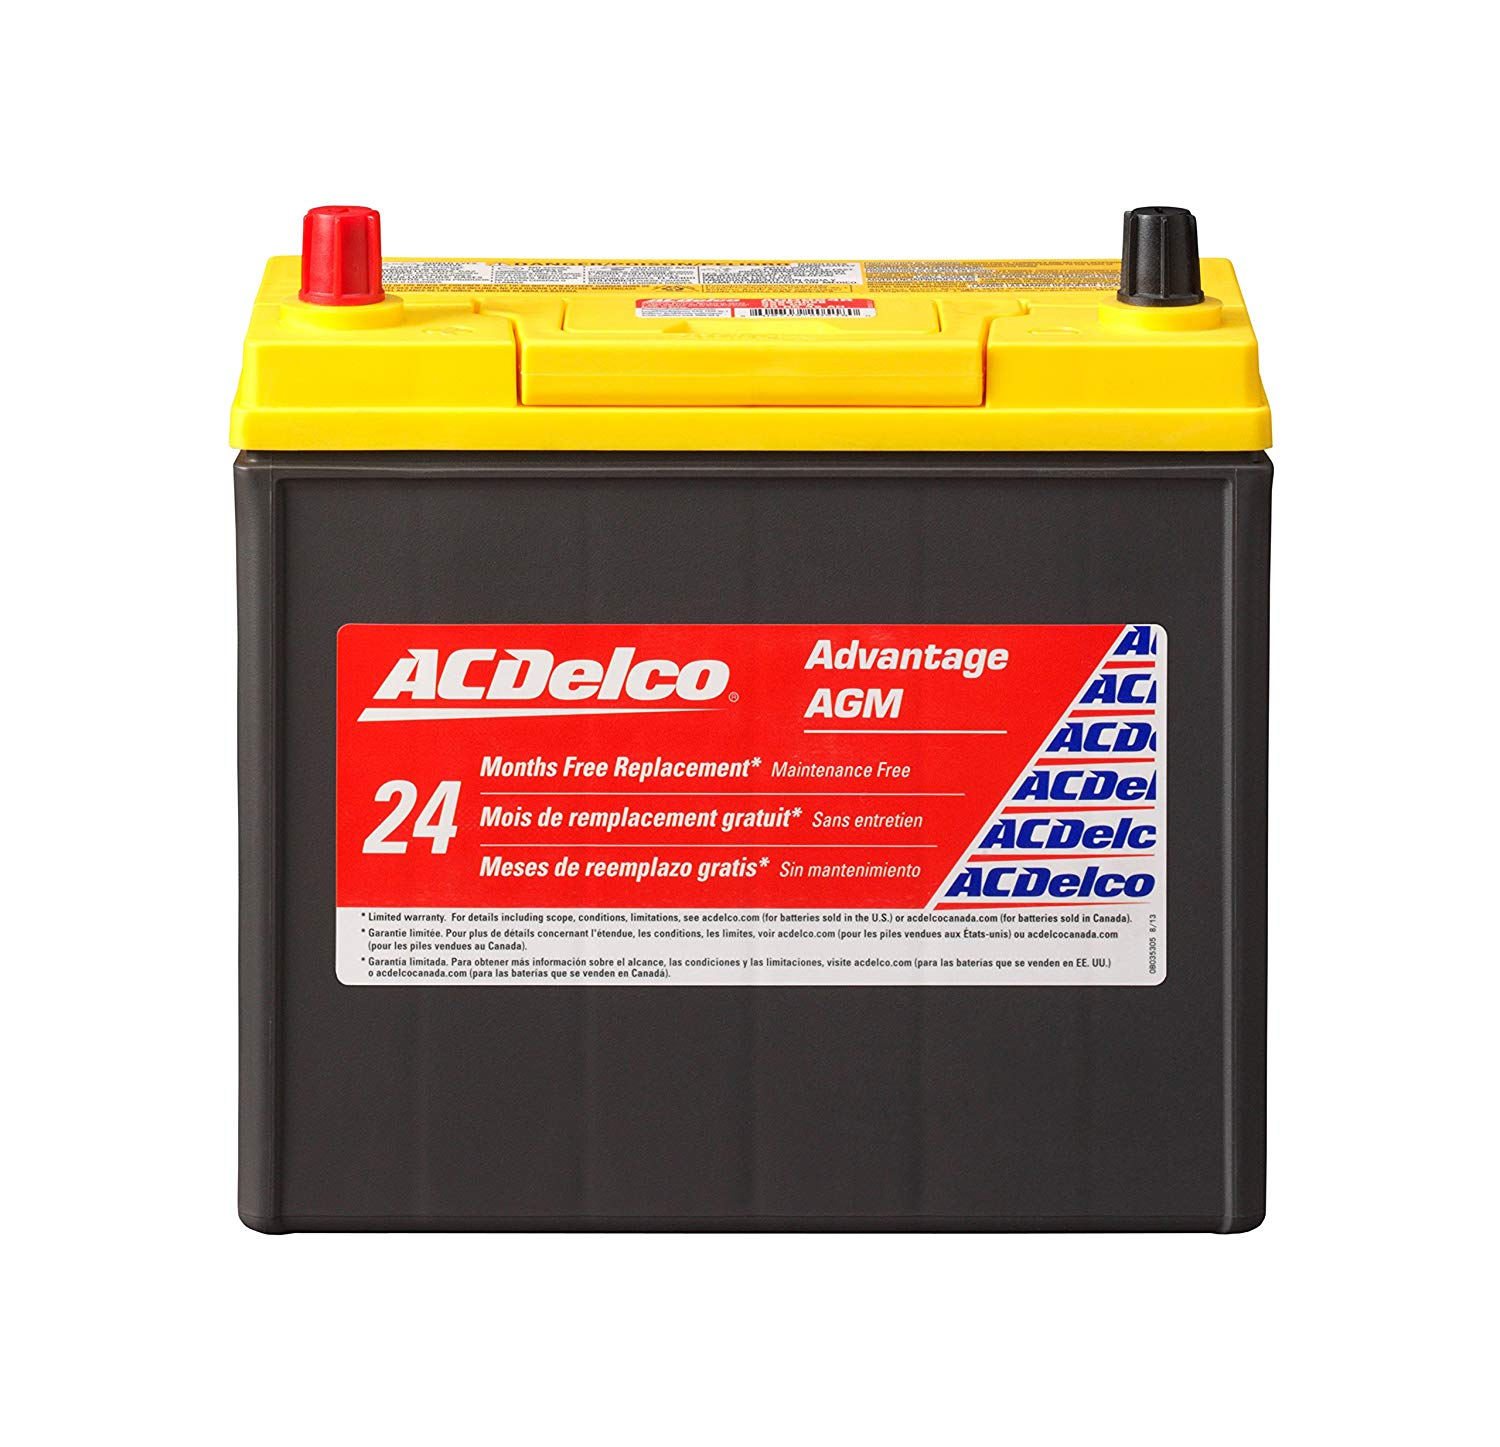 R32 Skyline AC Delco battery - image courtesy of Amazon.com